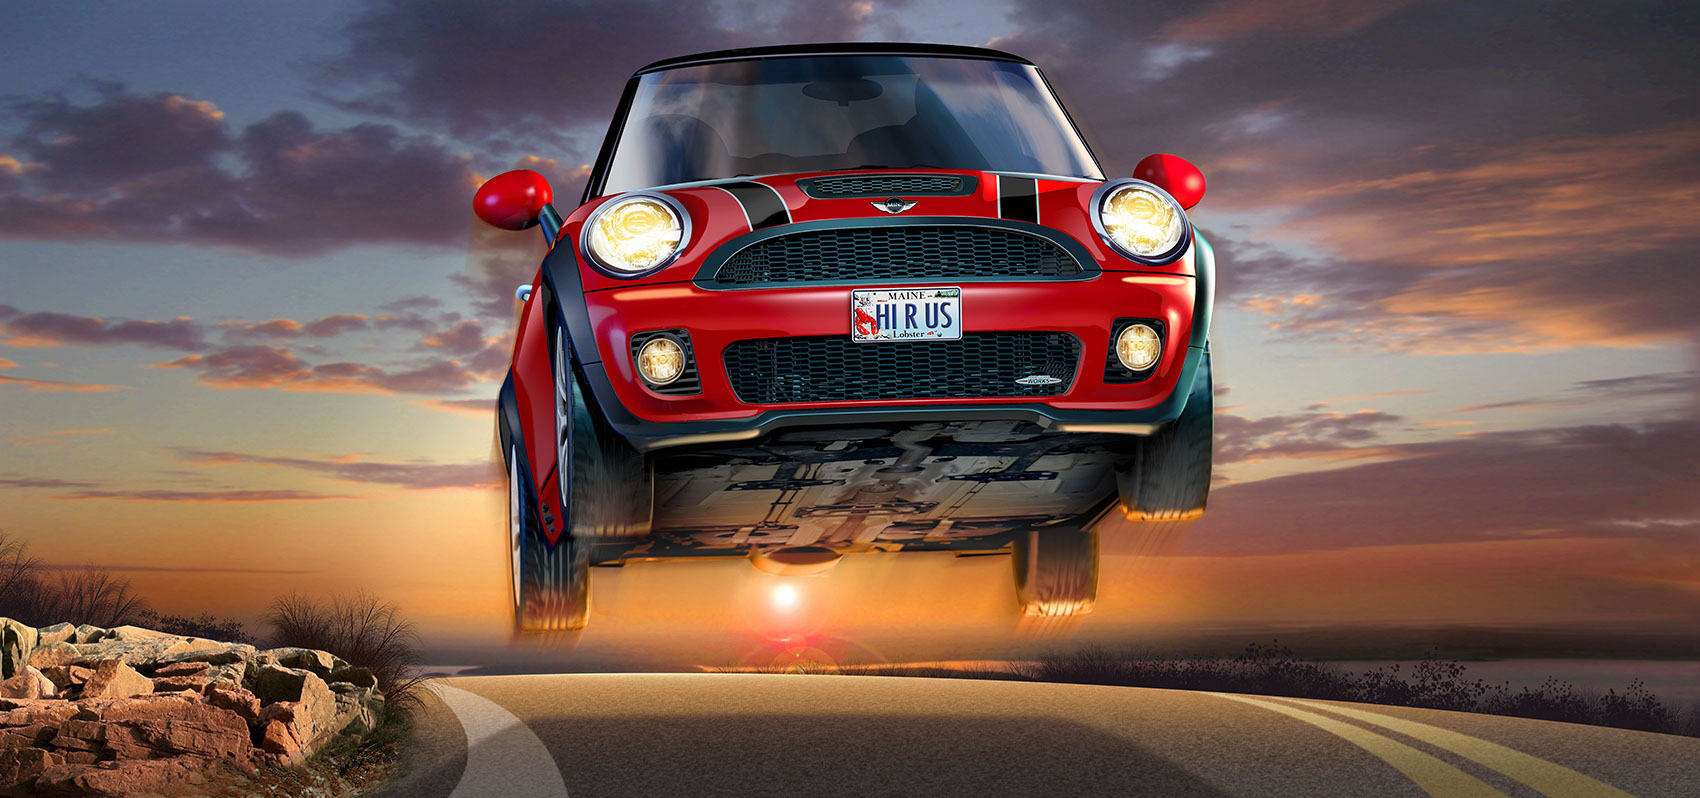 illustration-Products_Jumping mini cooper-Tony Randazzo